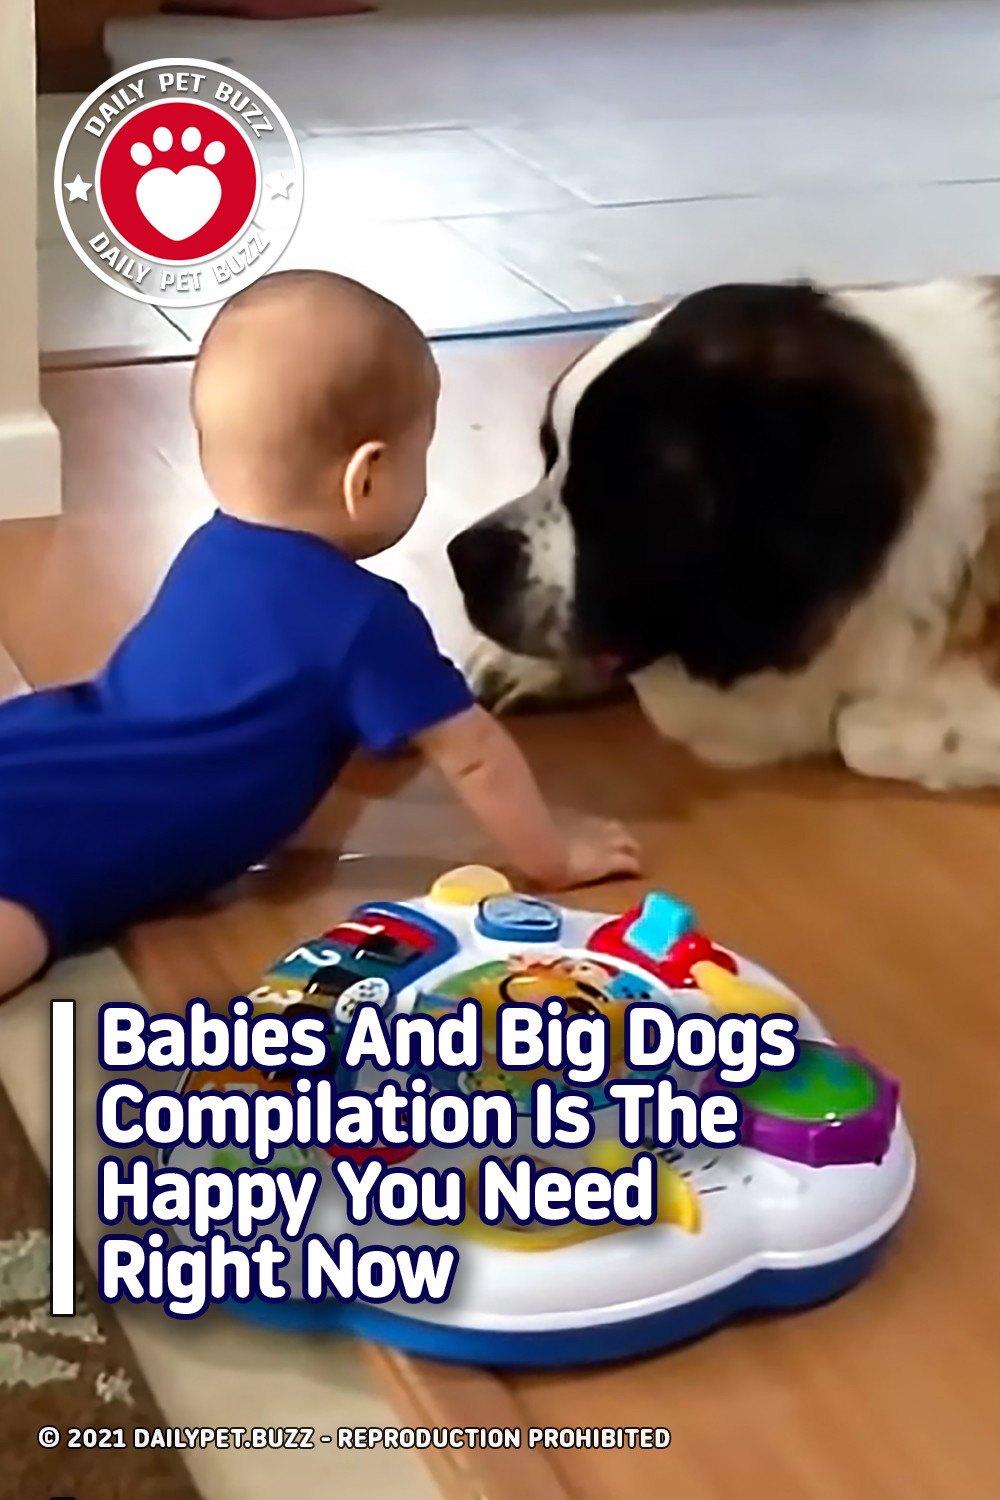 Babies And Big Dogs Compilation Is The Happy You Need Right Now